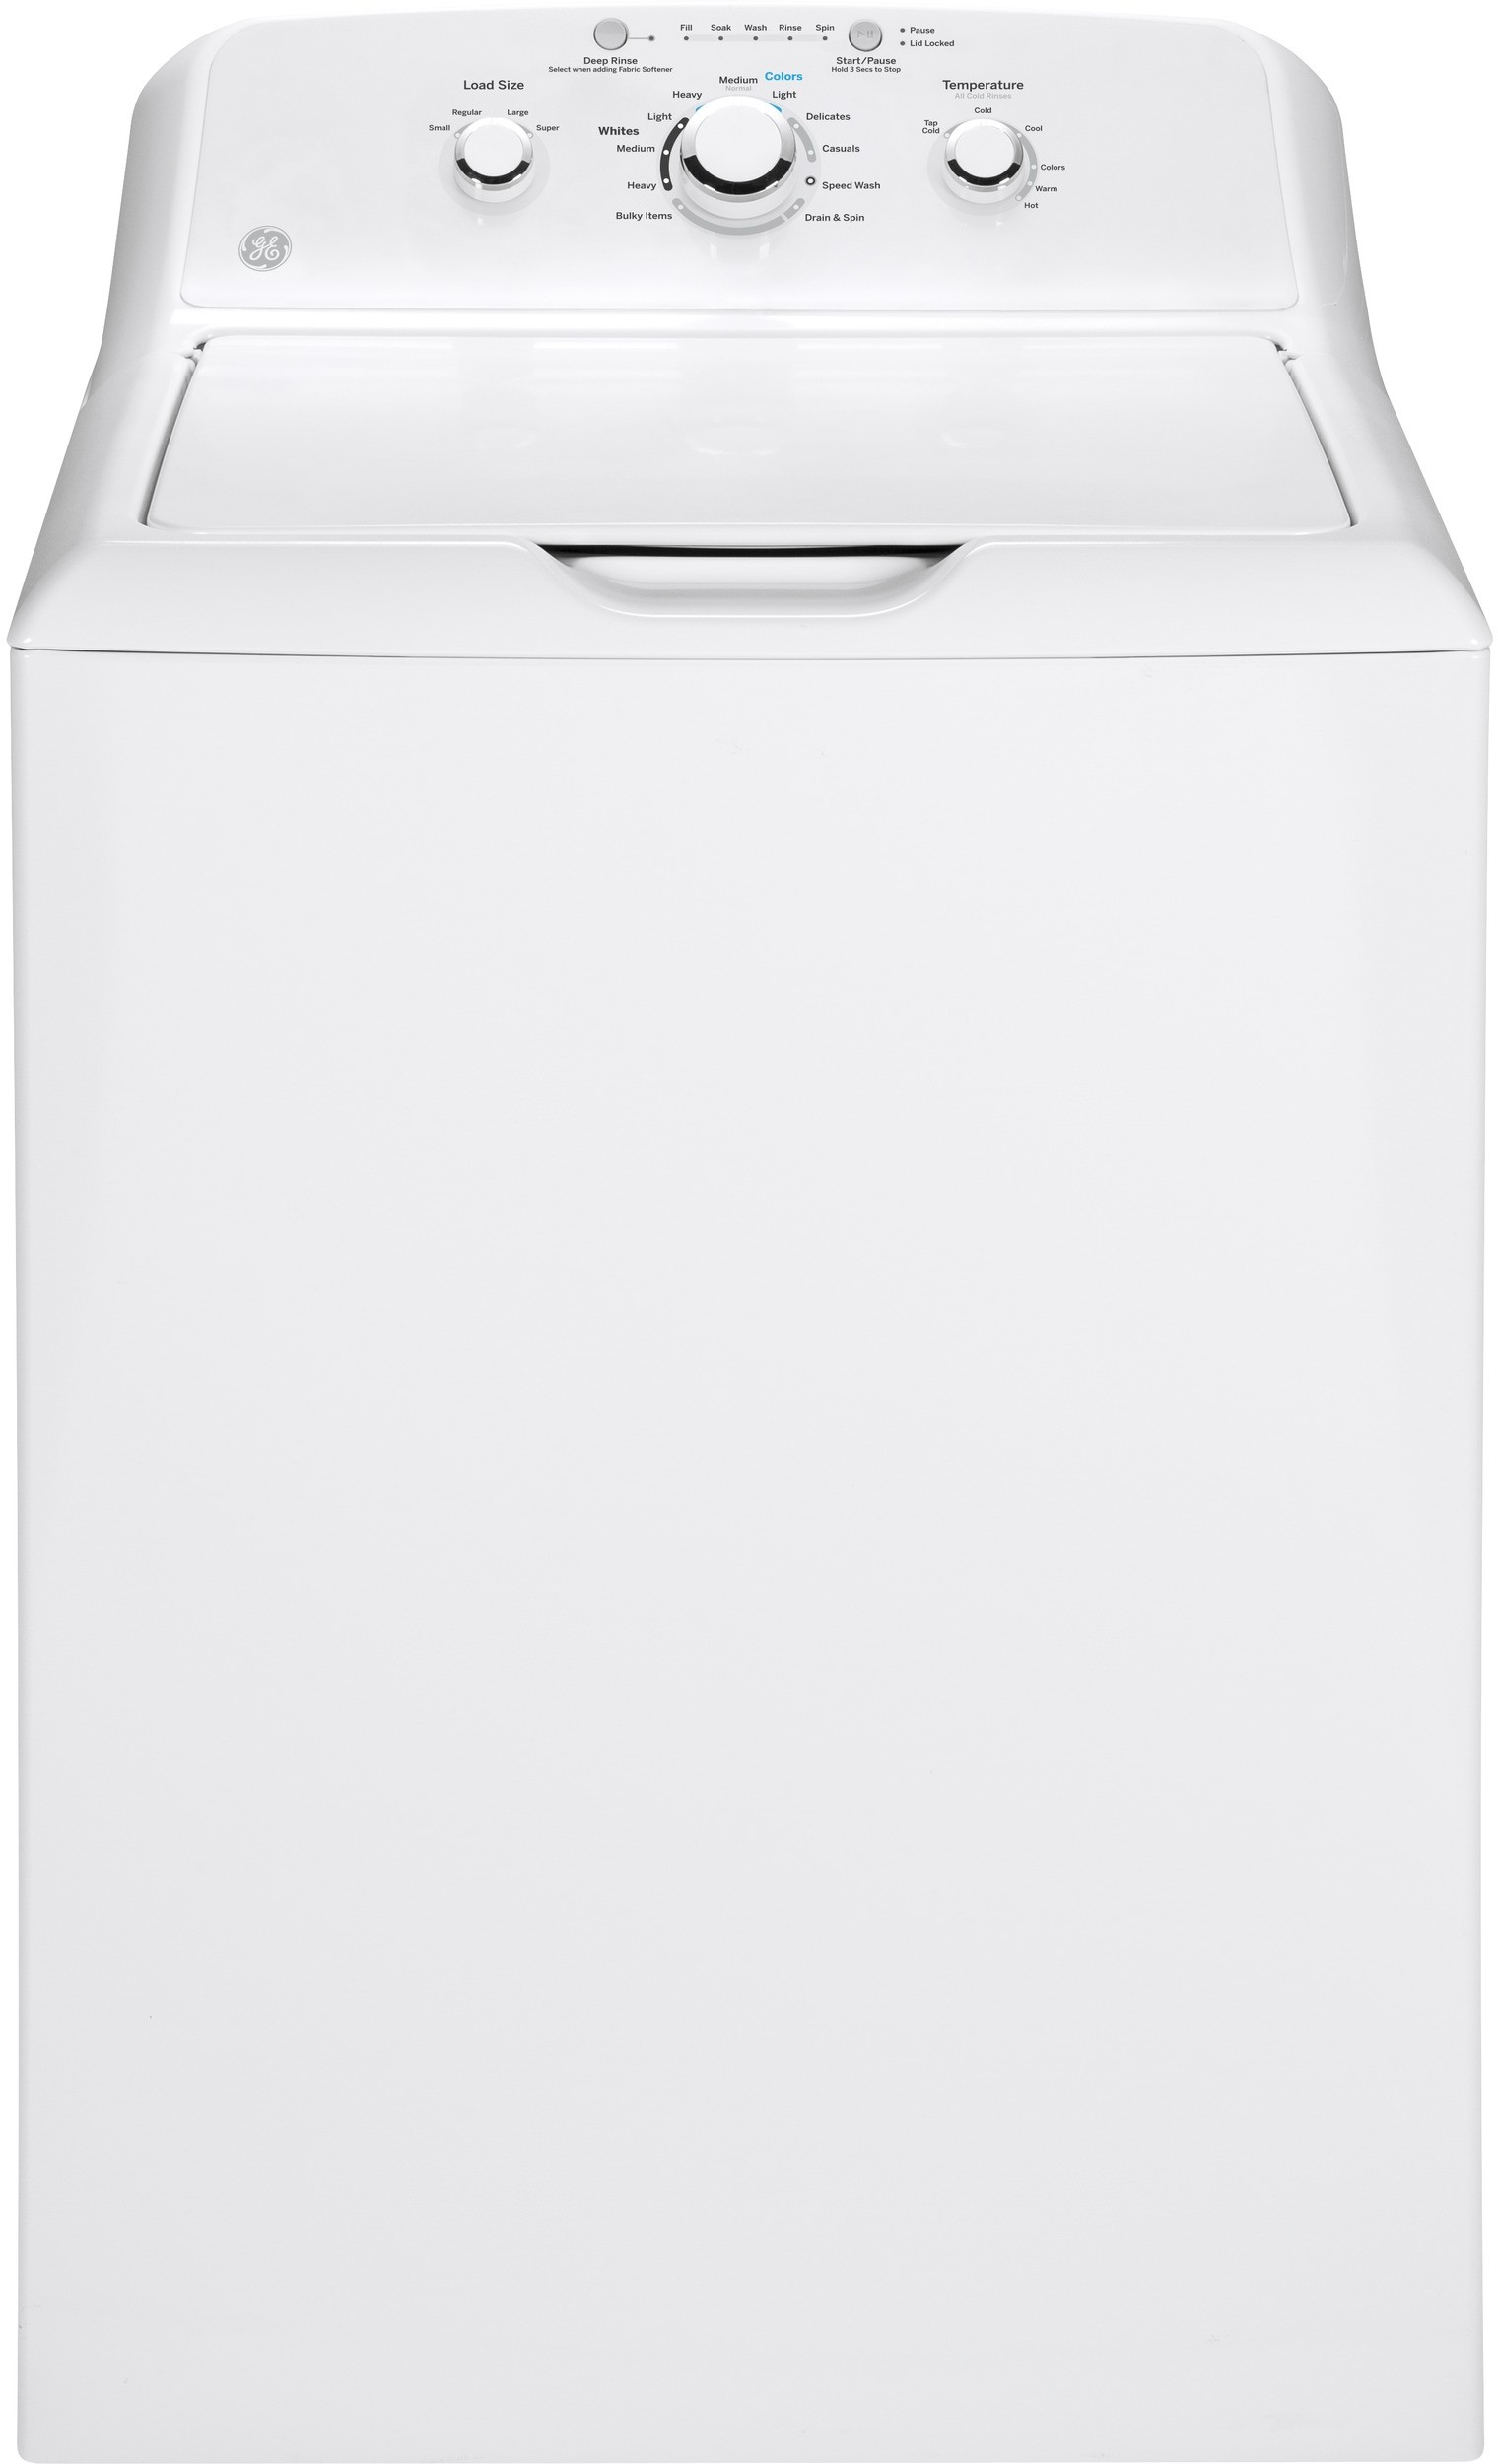 hight resolution of ge gtw330askww 27 inch 3 8 cu ft top load washer with 11 wash cycles 700 rpm deep rinse speed wash bleach and fabric softener dispensers